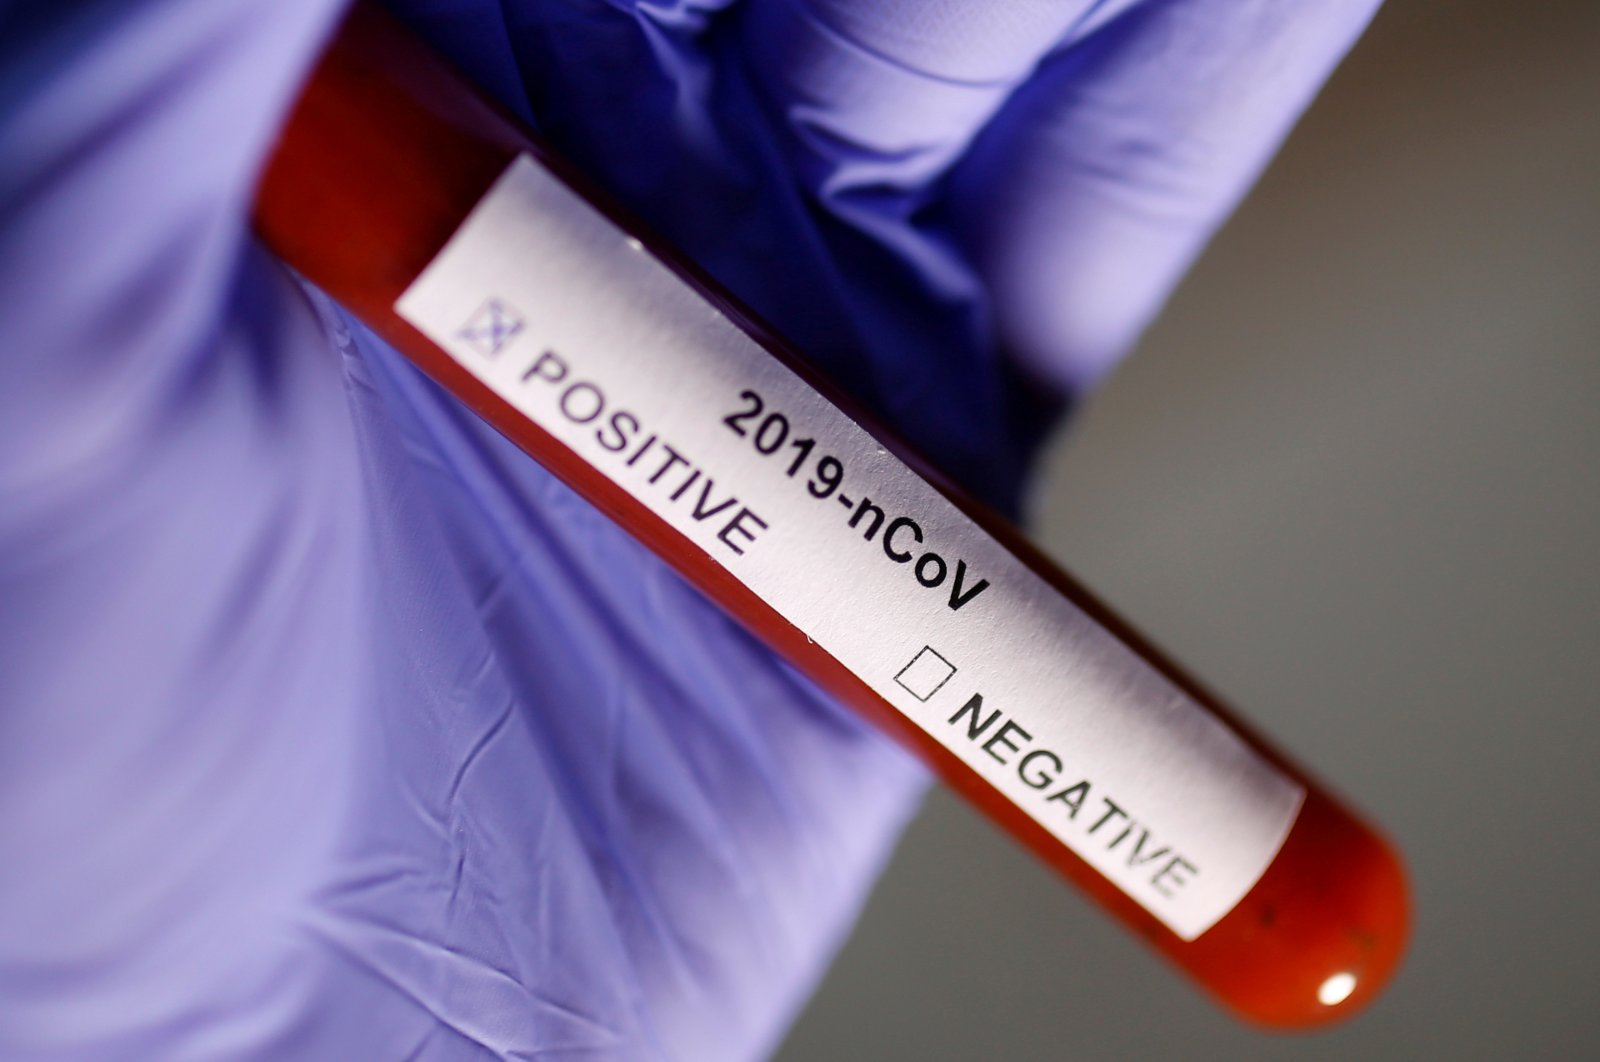 Test tube labelled with novel coronavirus name is seen in this illustration photo, Jan. 29, 2020. (Reuters Photo)